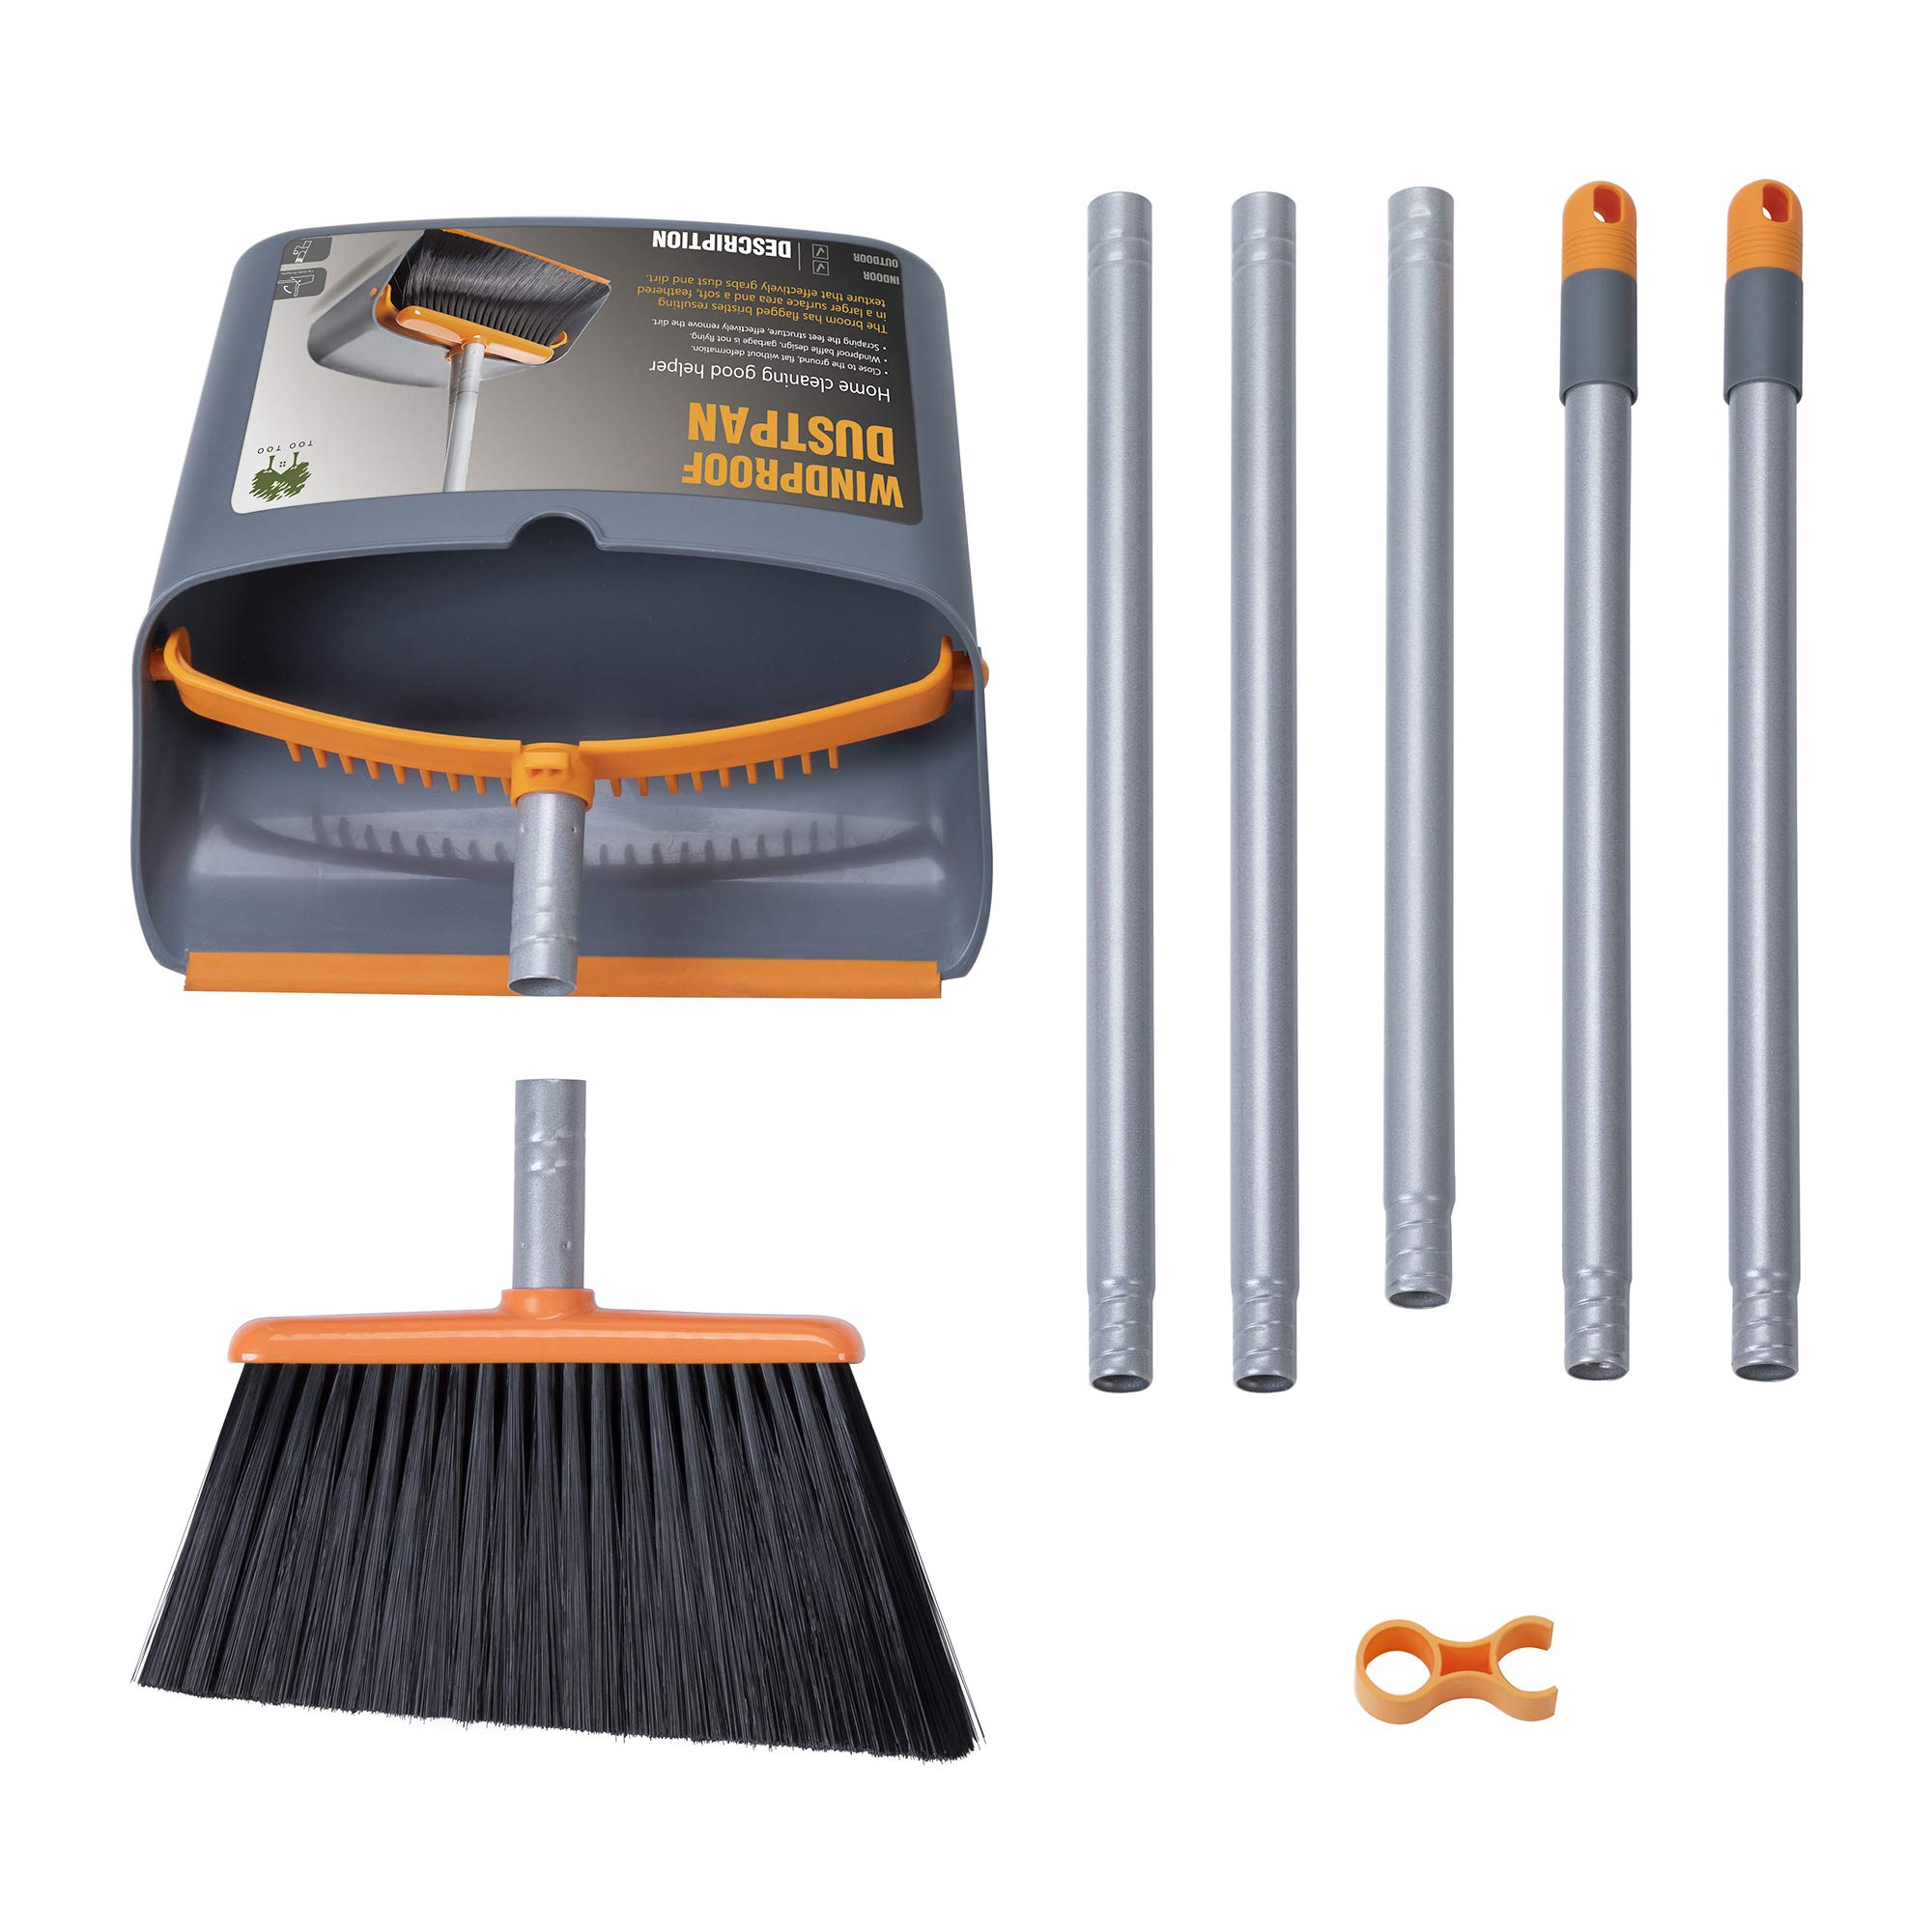 TooToo Broom and Dustpan Set, Sweep Set, Upright Broom and Dustpan Combo with 40''/54'' Long Extendable Handle for Household Cleaning Sweeping, Orange and Dark Grey by TooToo (Image #7)